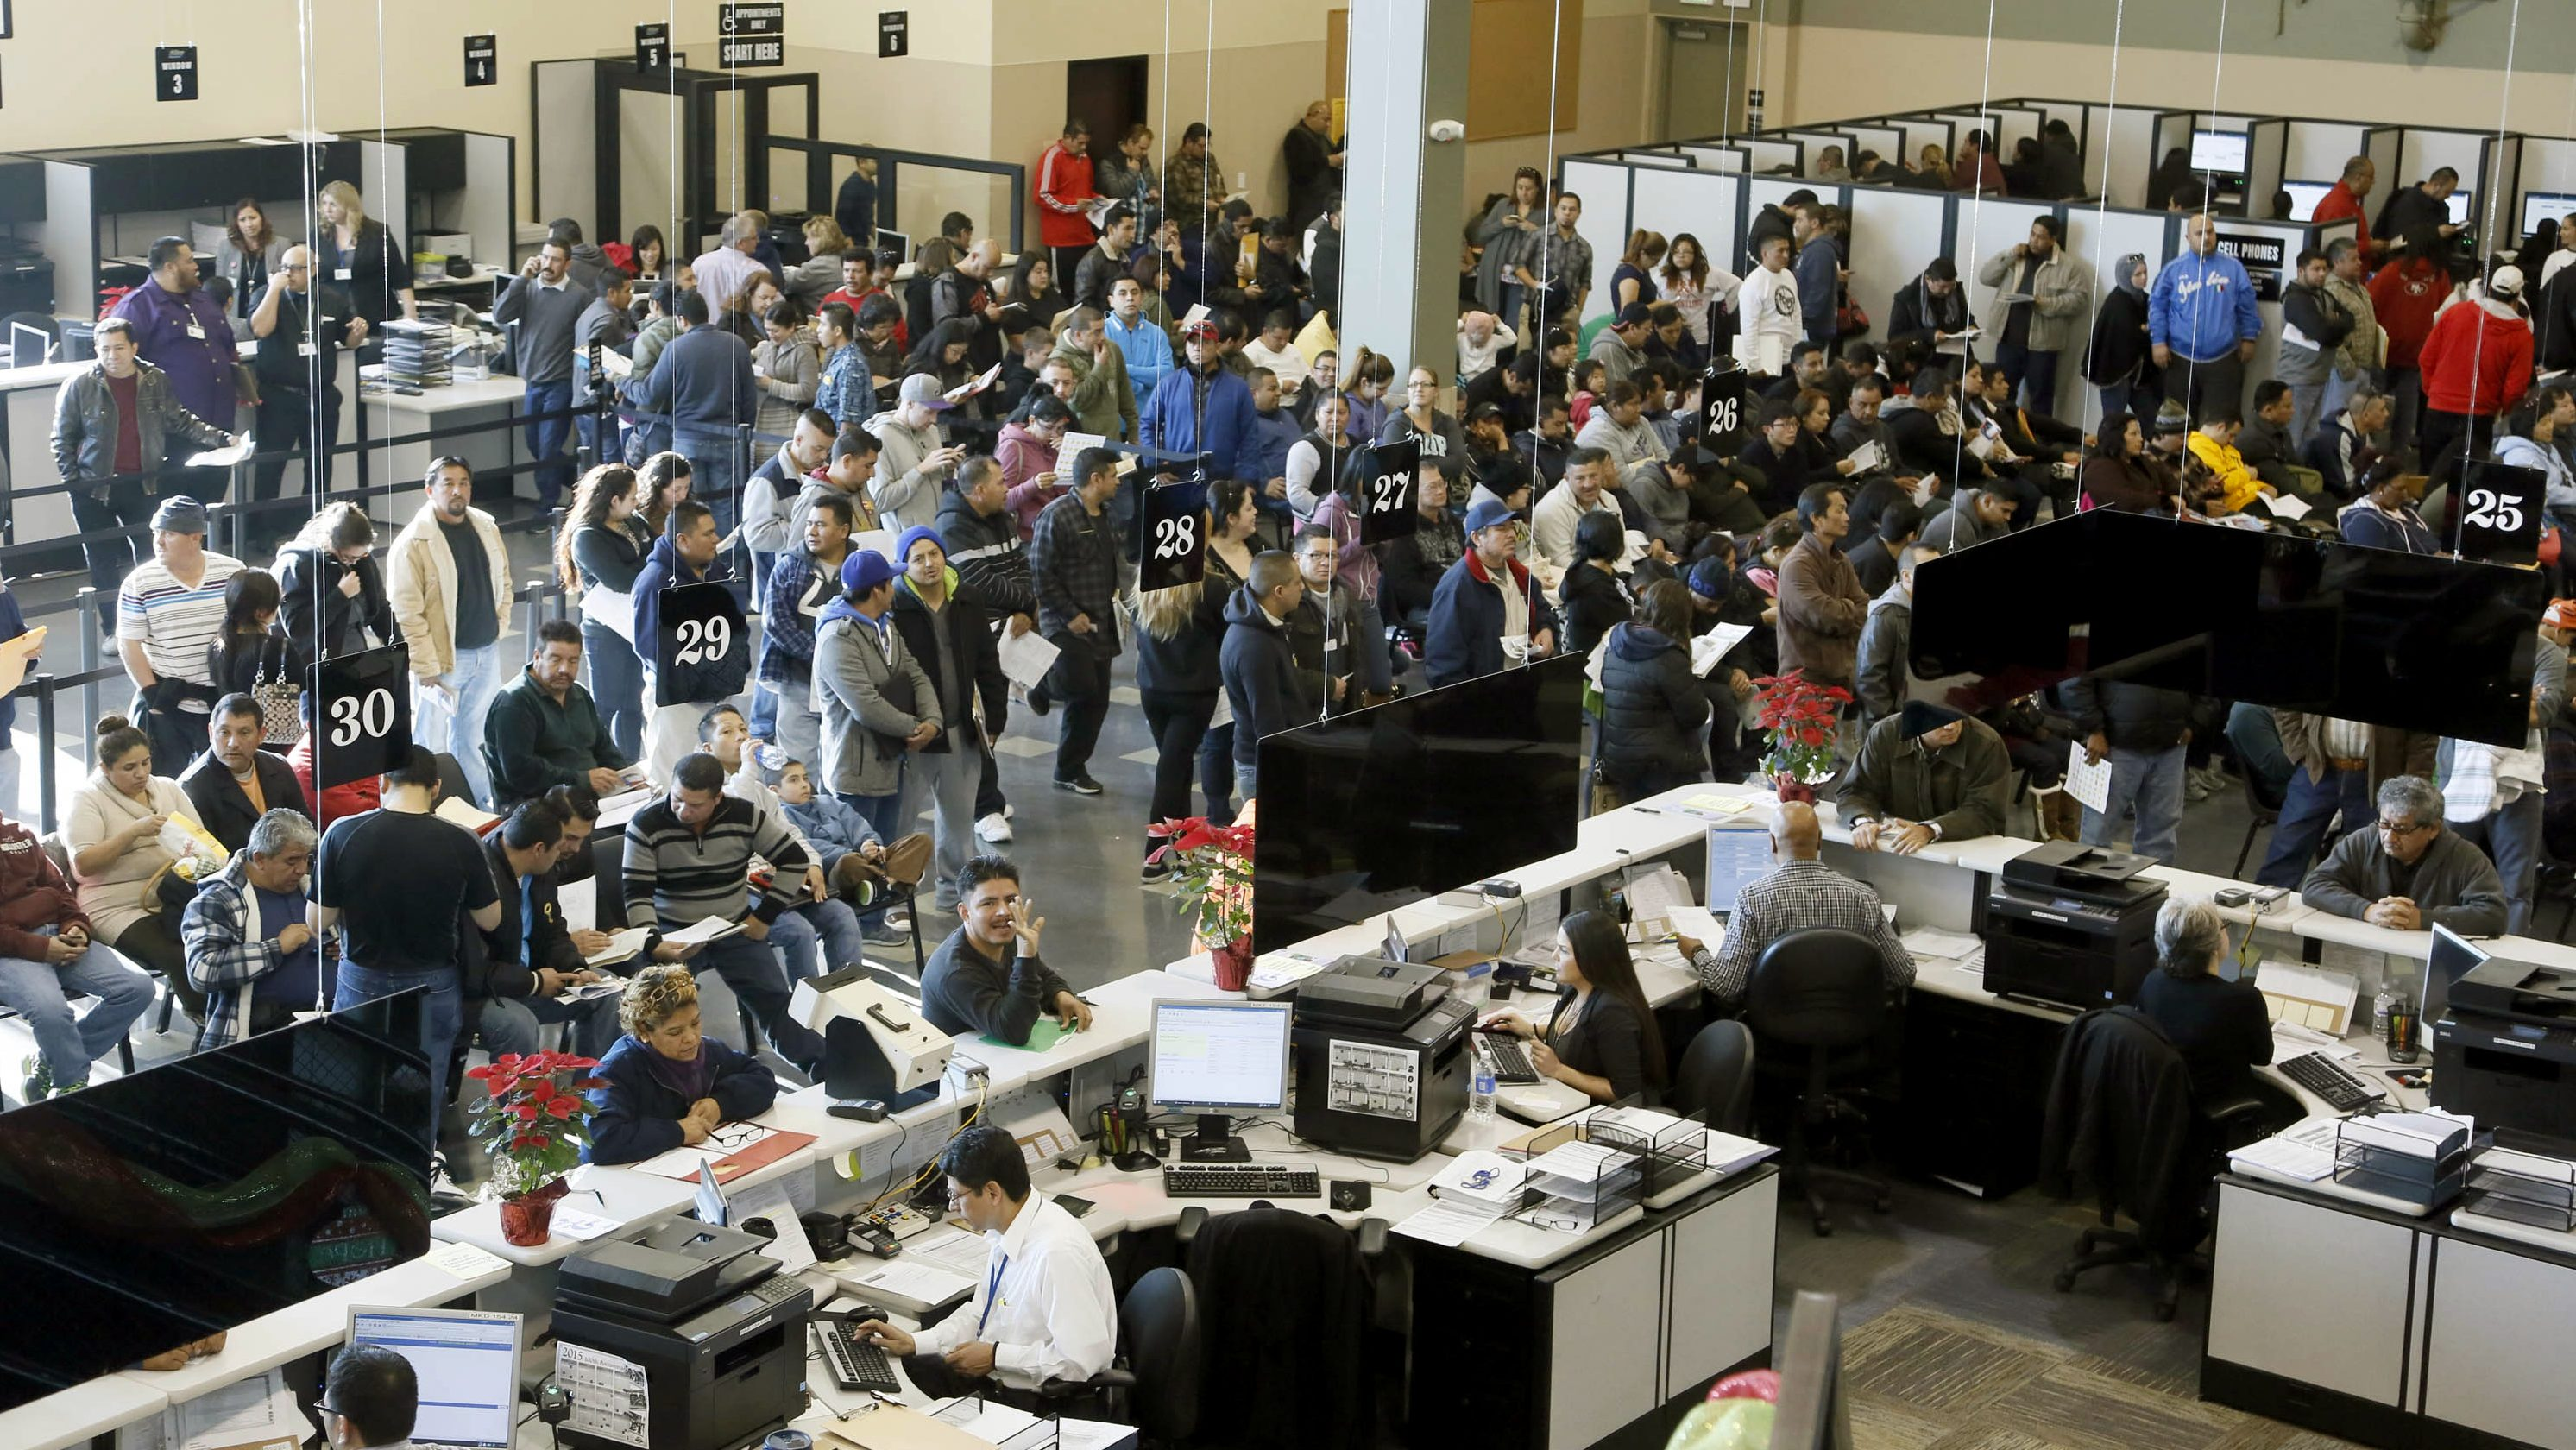 Immigrants line up at a California Department of Motor Vehicles office to register for drivers licenses